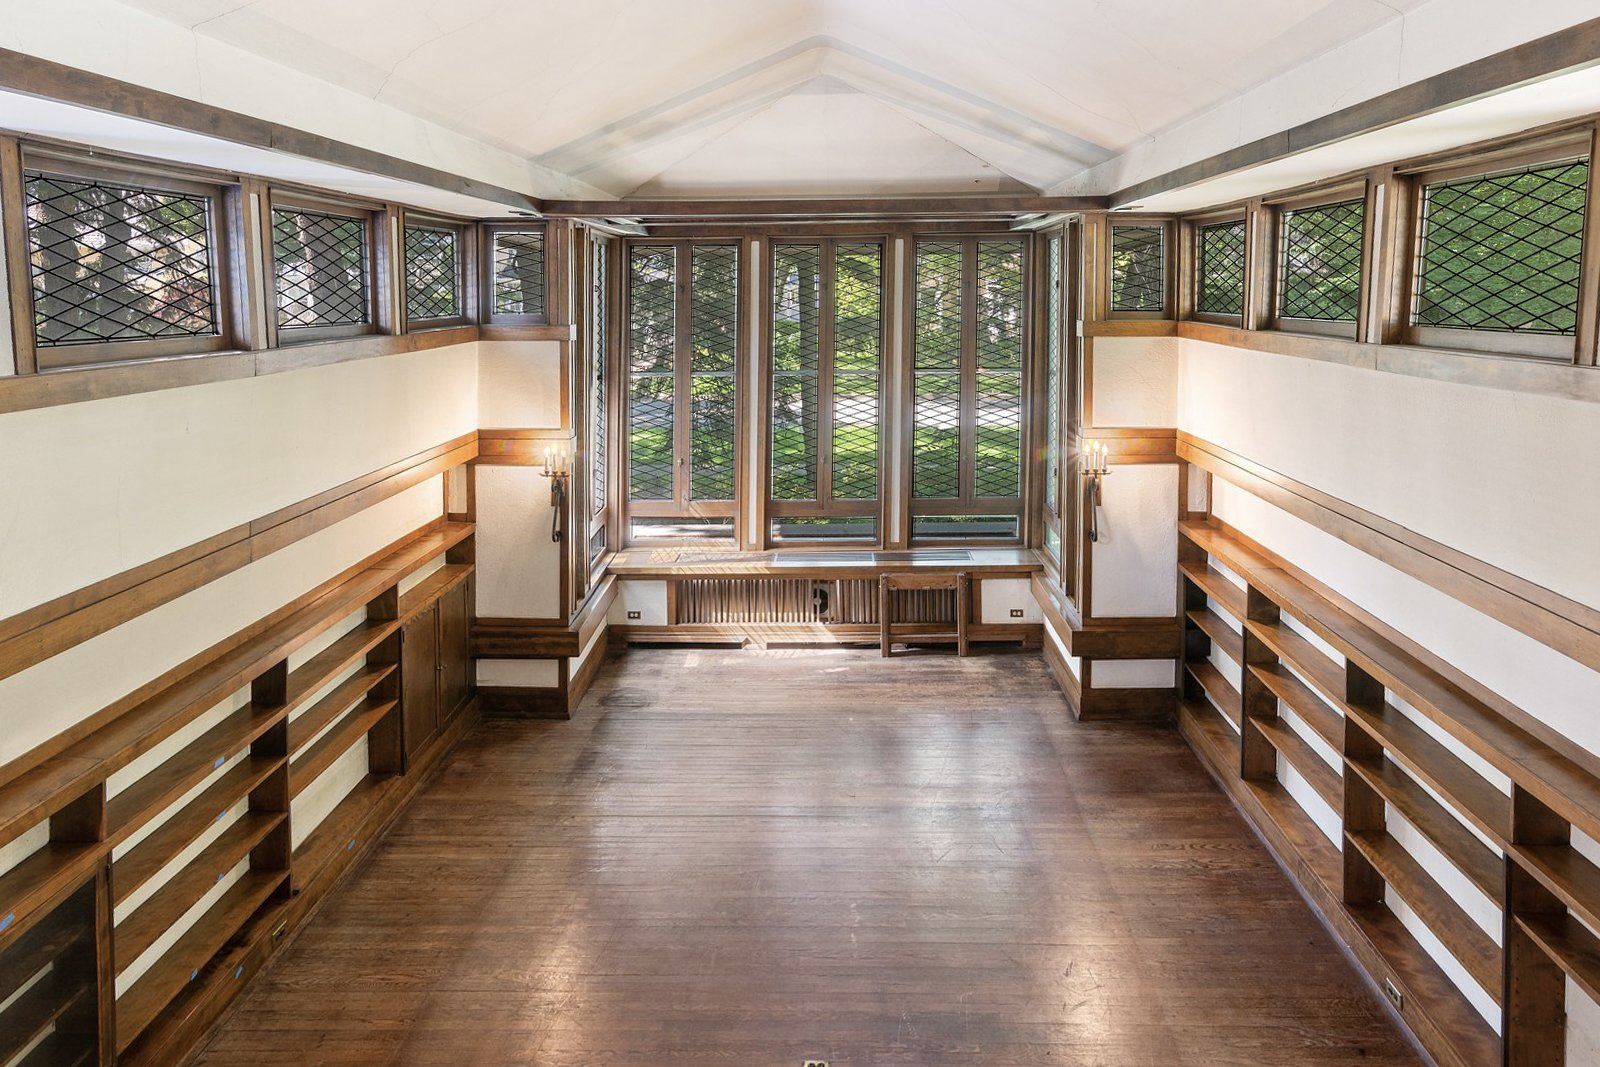 Photo 1 of 14 in This Rare 1909 Frank Lloyd Wright Home With a Cathedral-Like Living Room Asks $900K